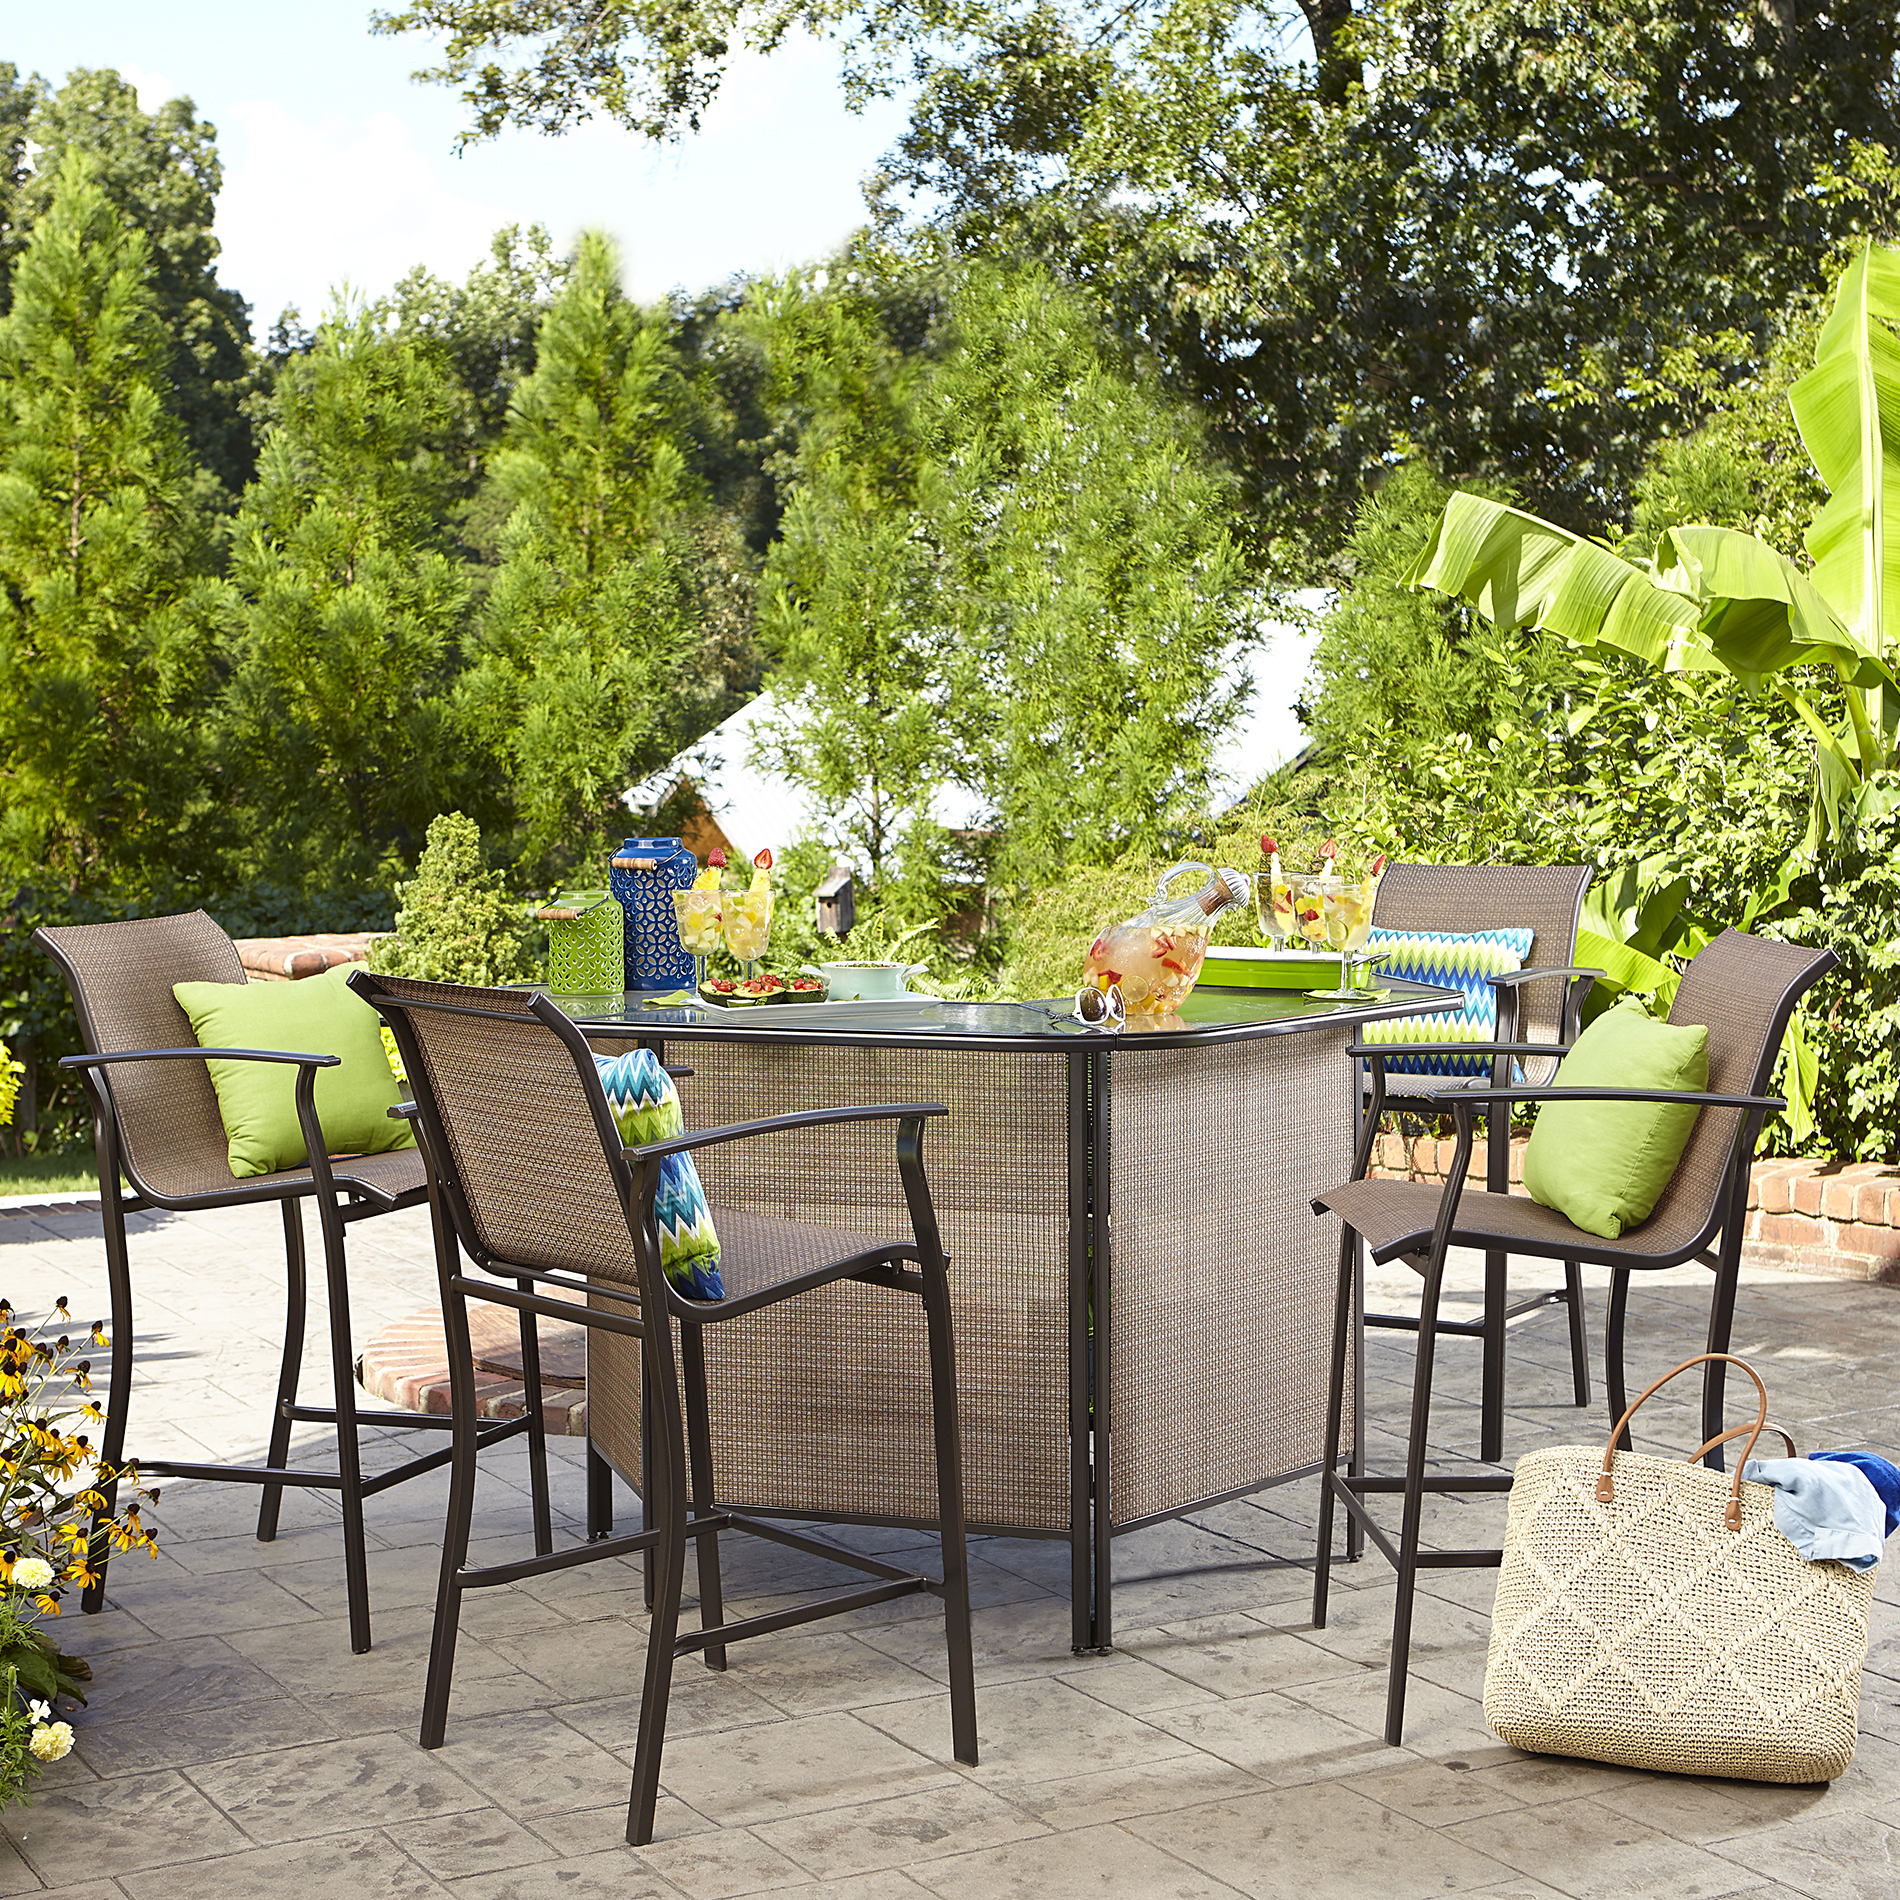 Patio Bar Set With Patio Bar Set Outdoor Ihdjlub Selecting Lovely Patio Bar Set For Your Home Darbylanefurniturecom